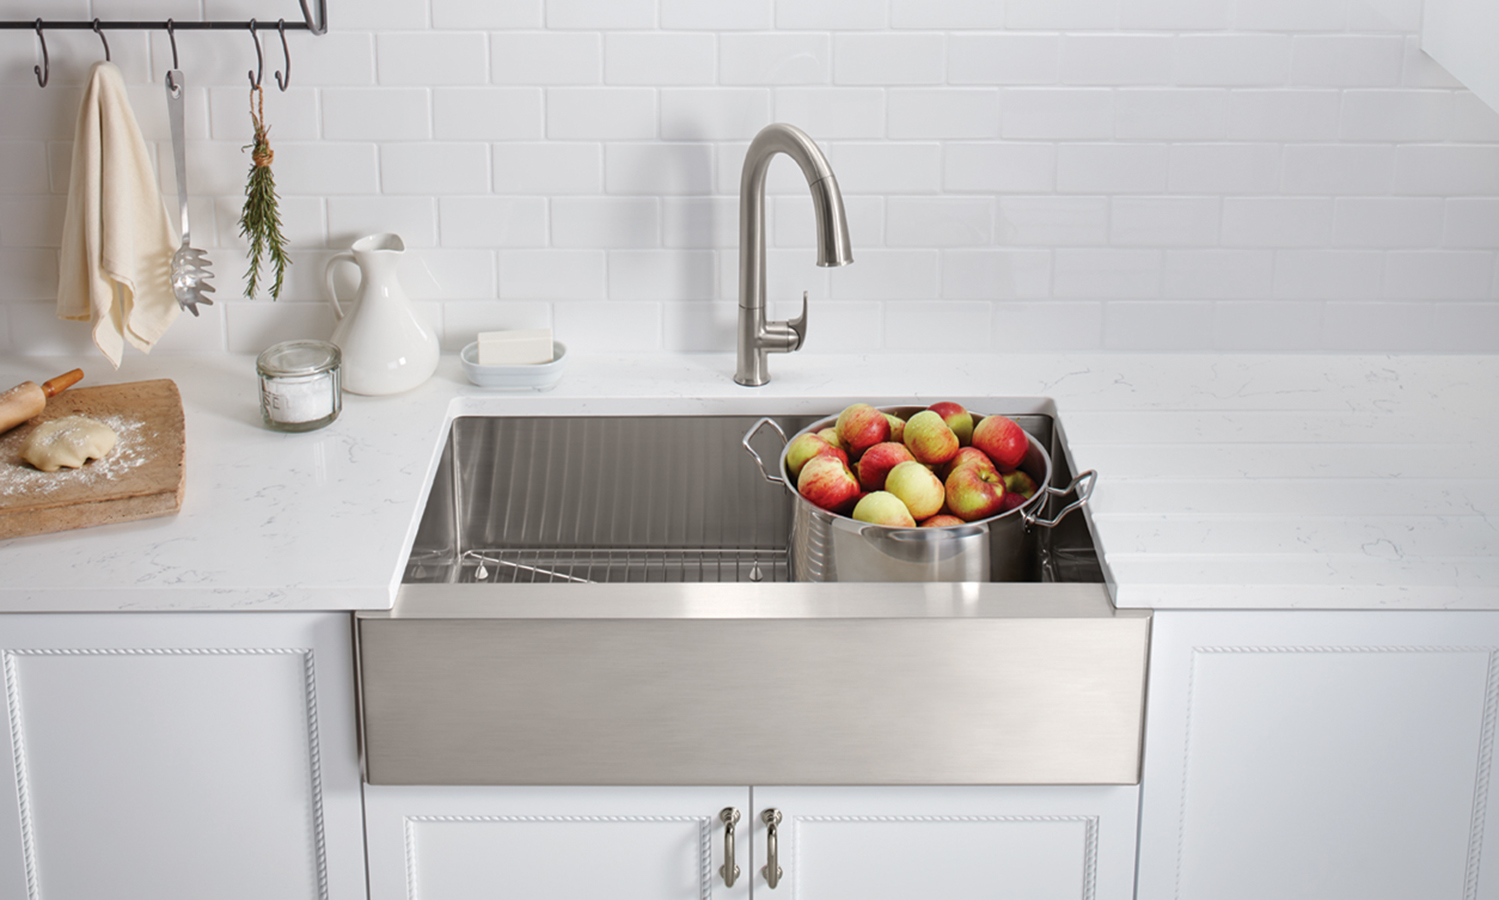 stainless steel under-mount sink, and a faucet, on a white countertop